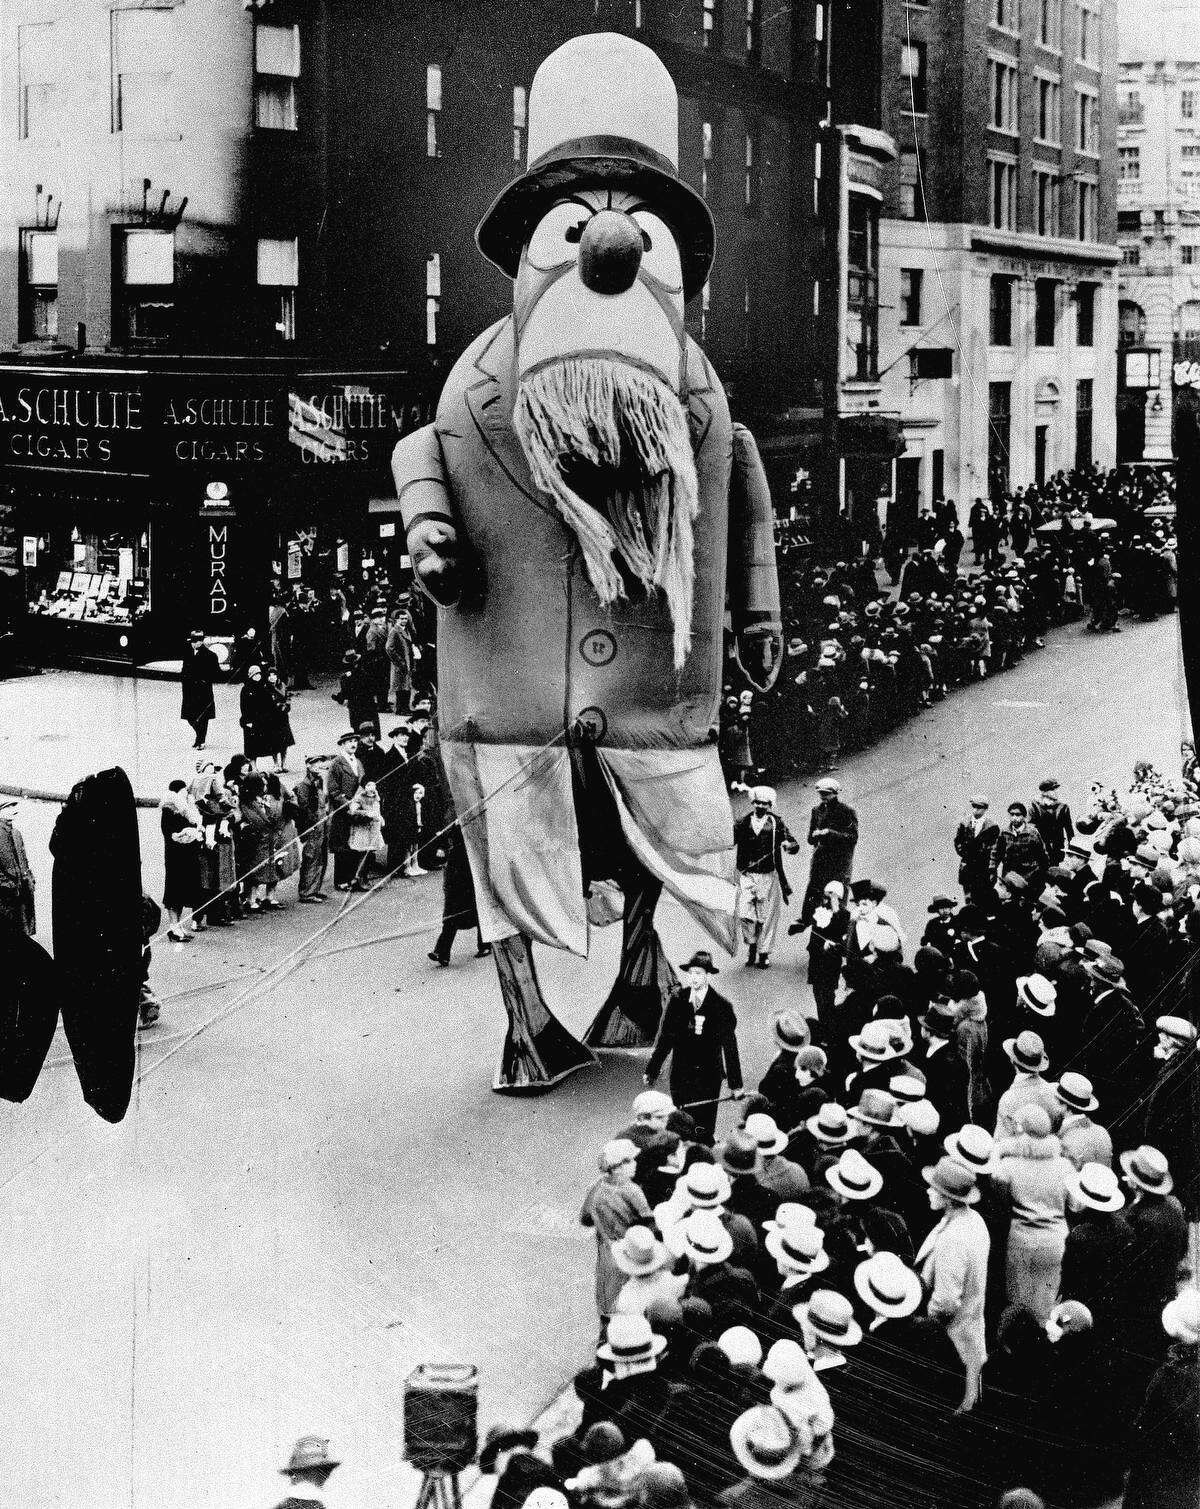 A large outdoor float of Captain Nemo makes its way down the street during the Macy's Thanksgiving Day parade in New York City on Nov. 28, 1929. (AP Photo)